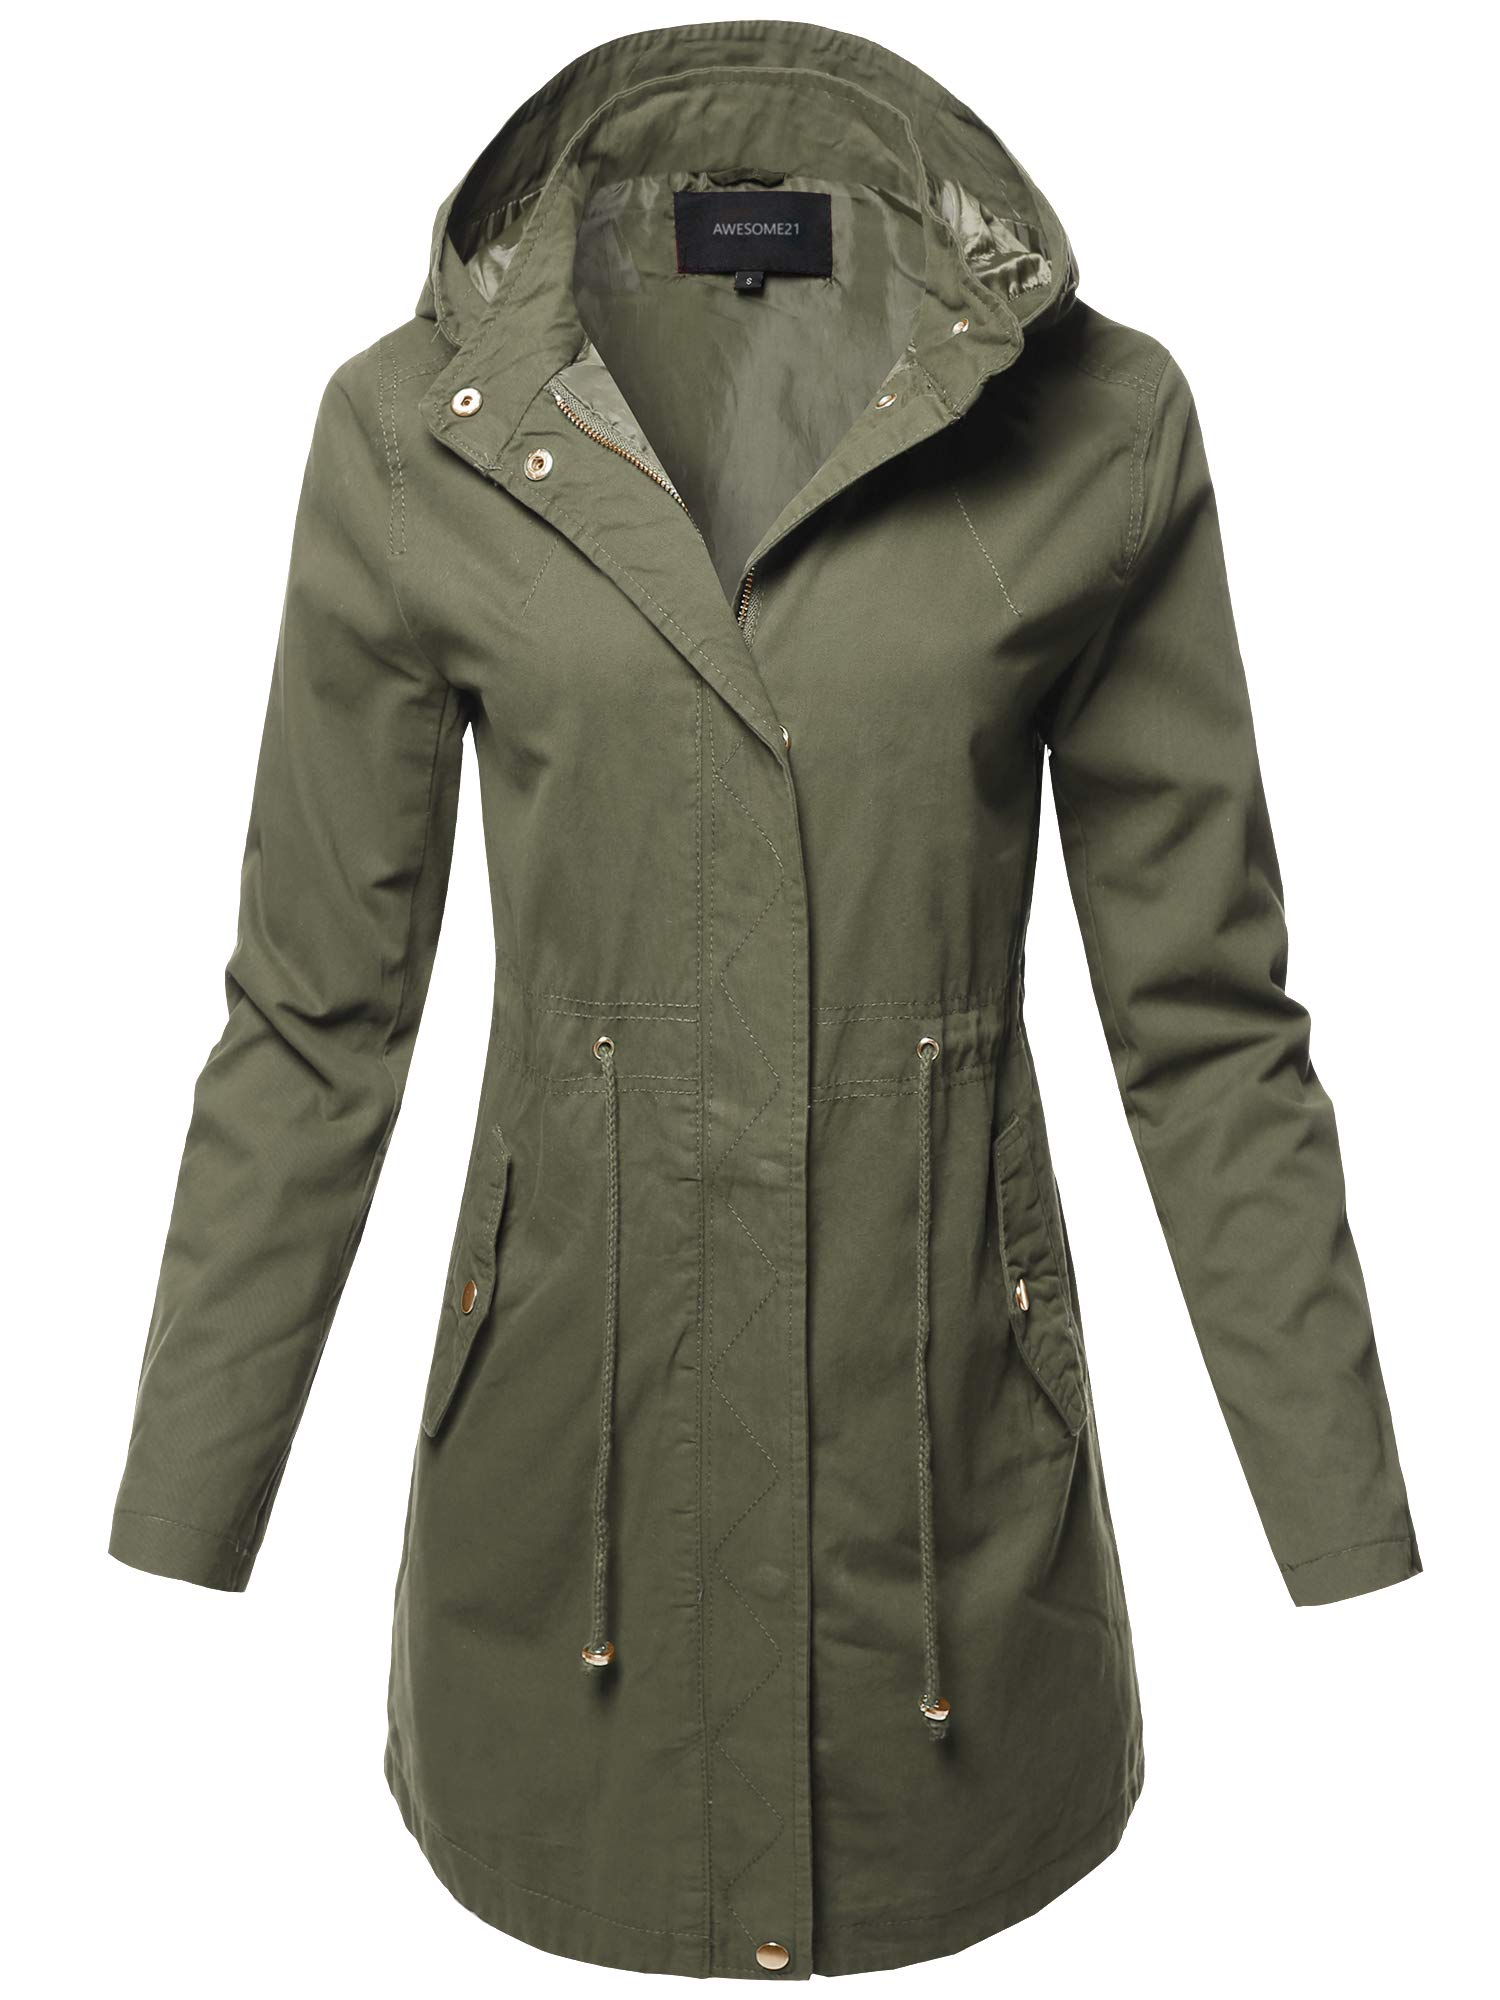 Awesome21 Casual Hooded Drawstring Military Long Length Jacket Olive Size M